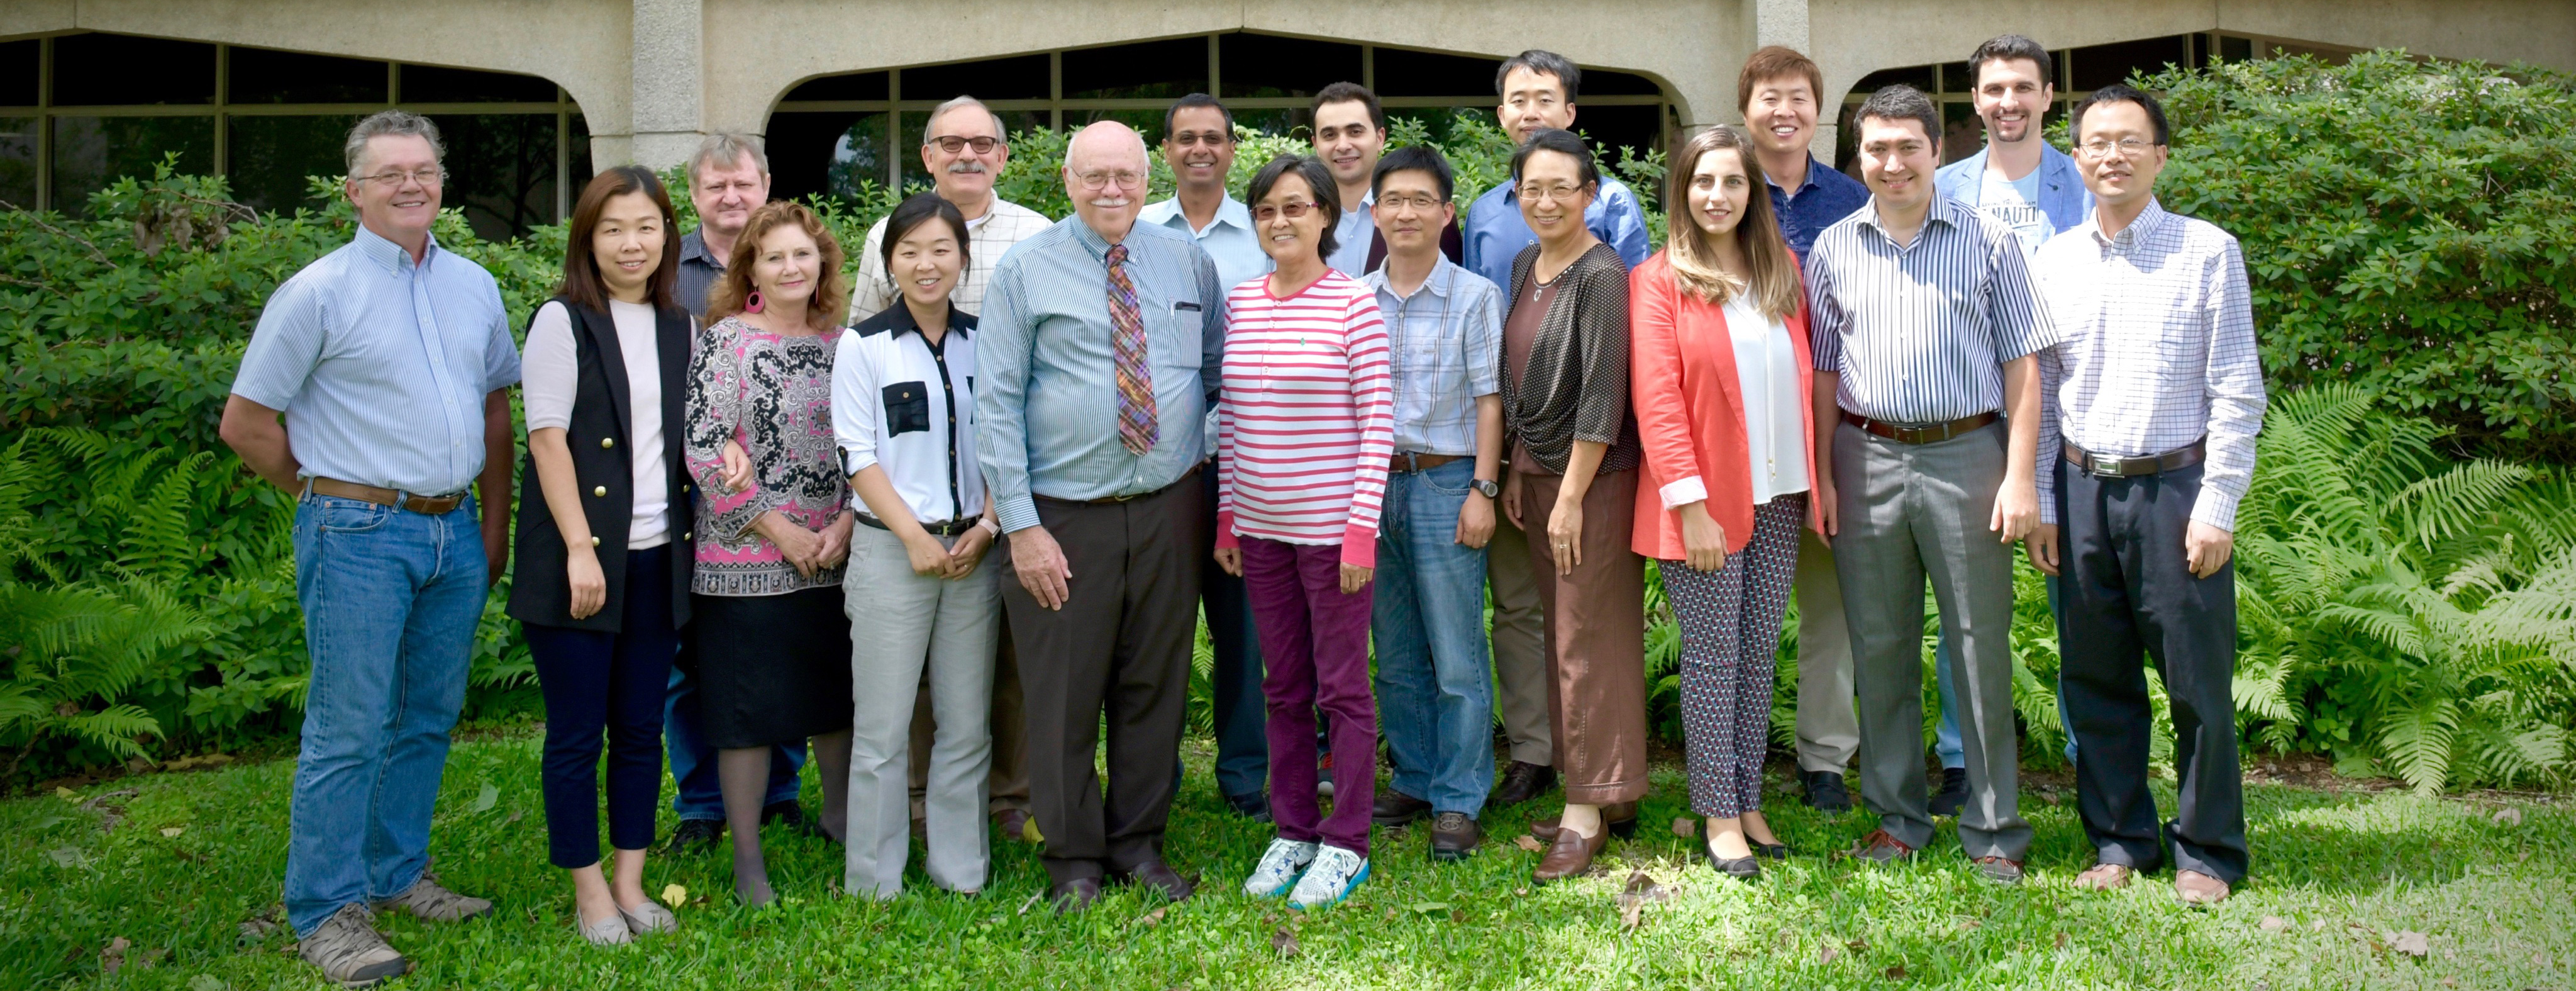 Computer Science Faculty Group Picture